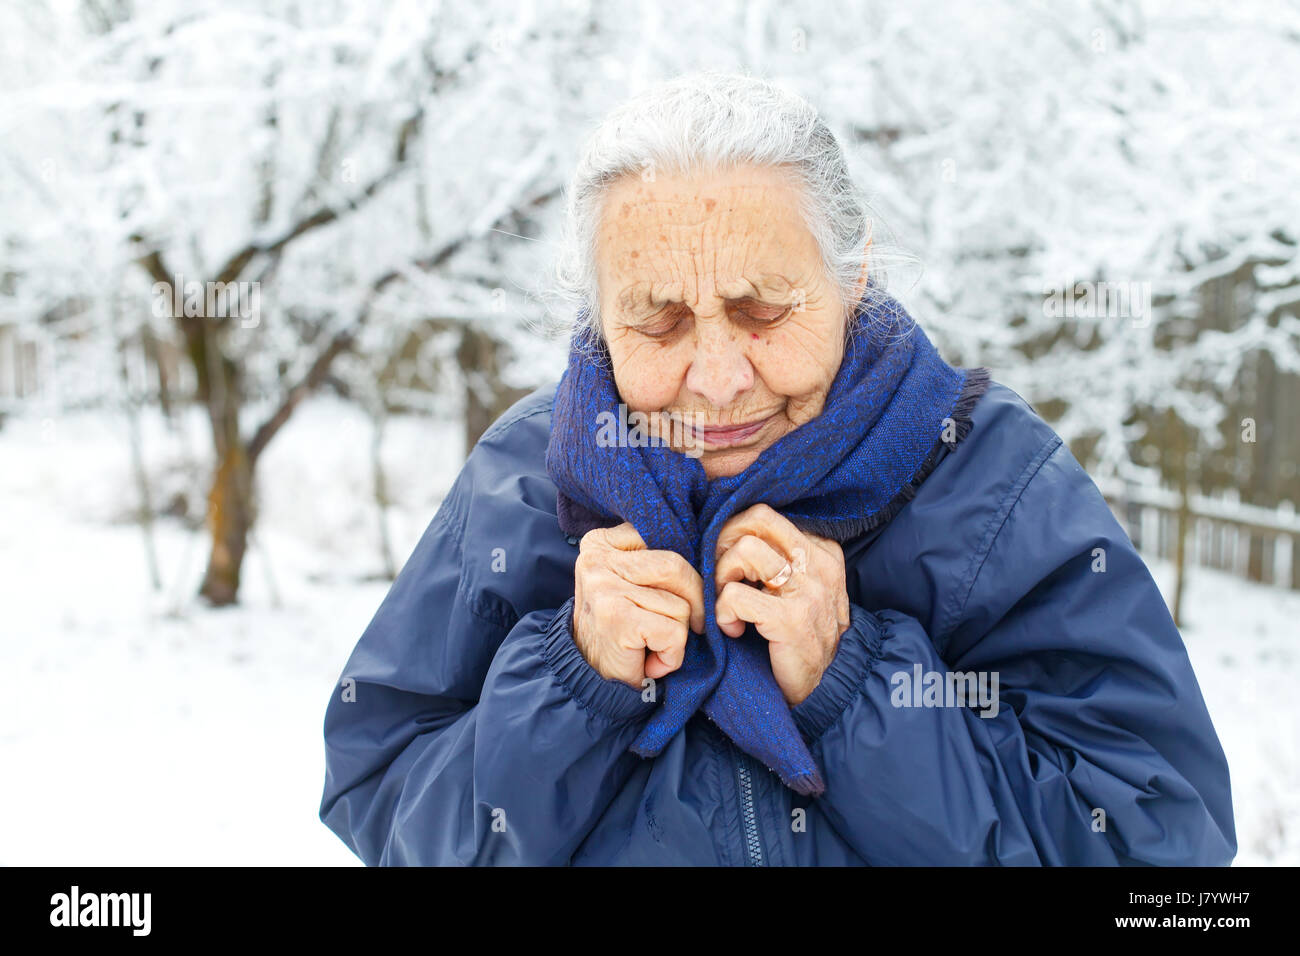 Picture of an old lady feeling cold on wintertime - Stock Image